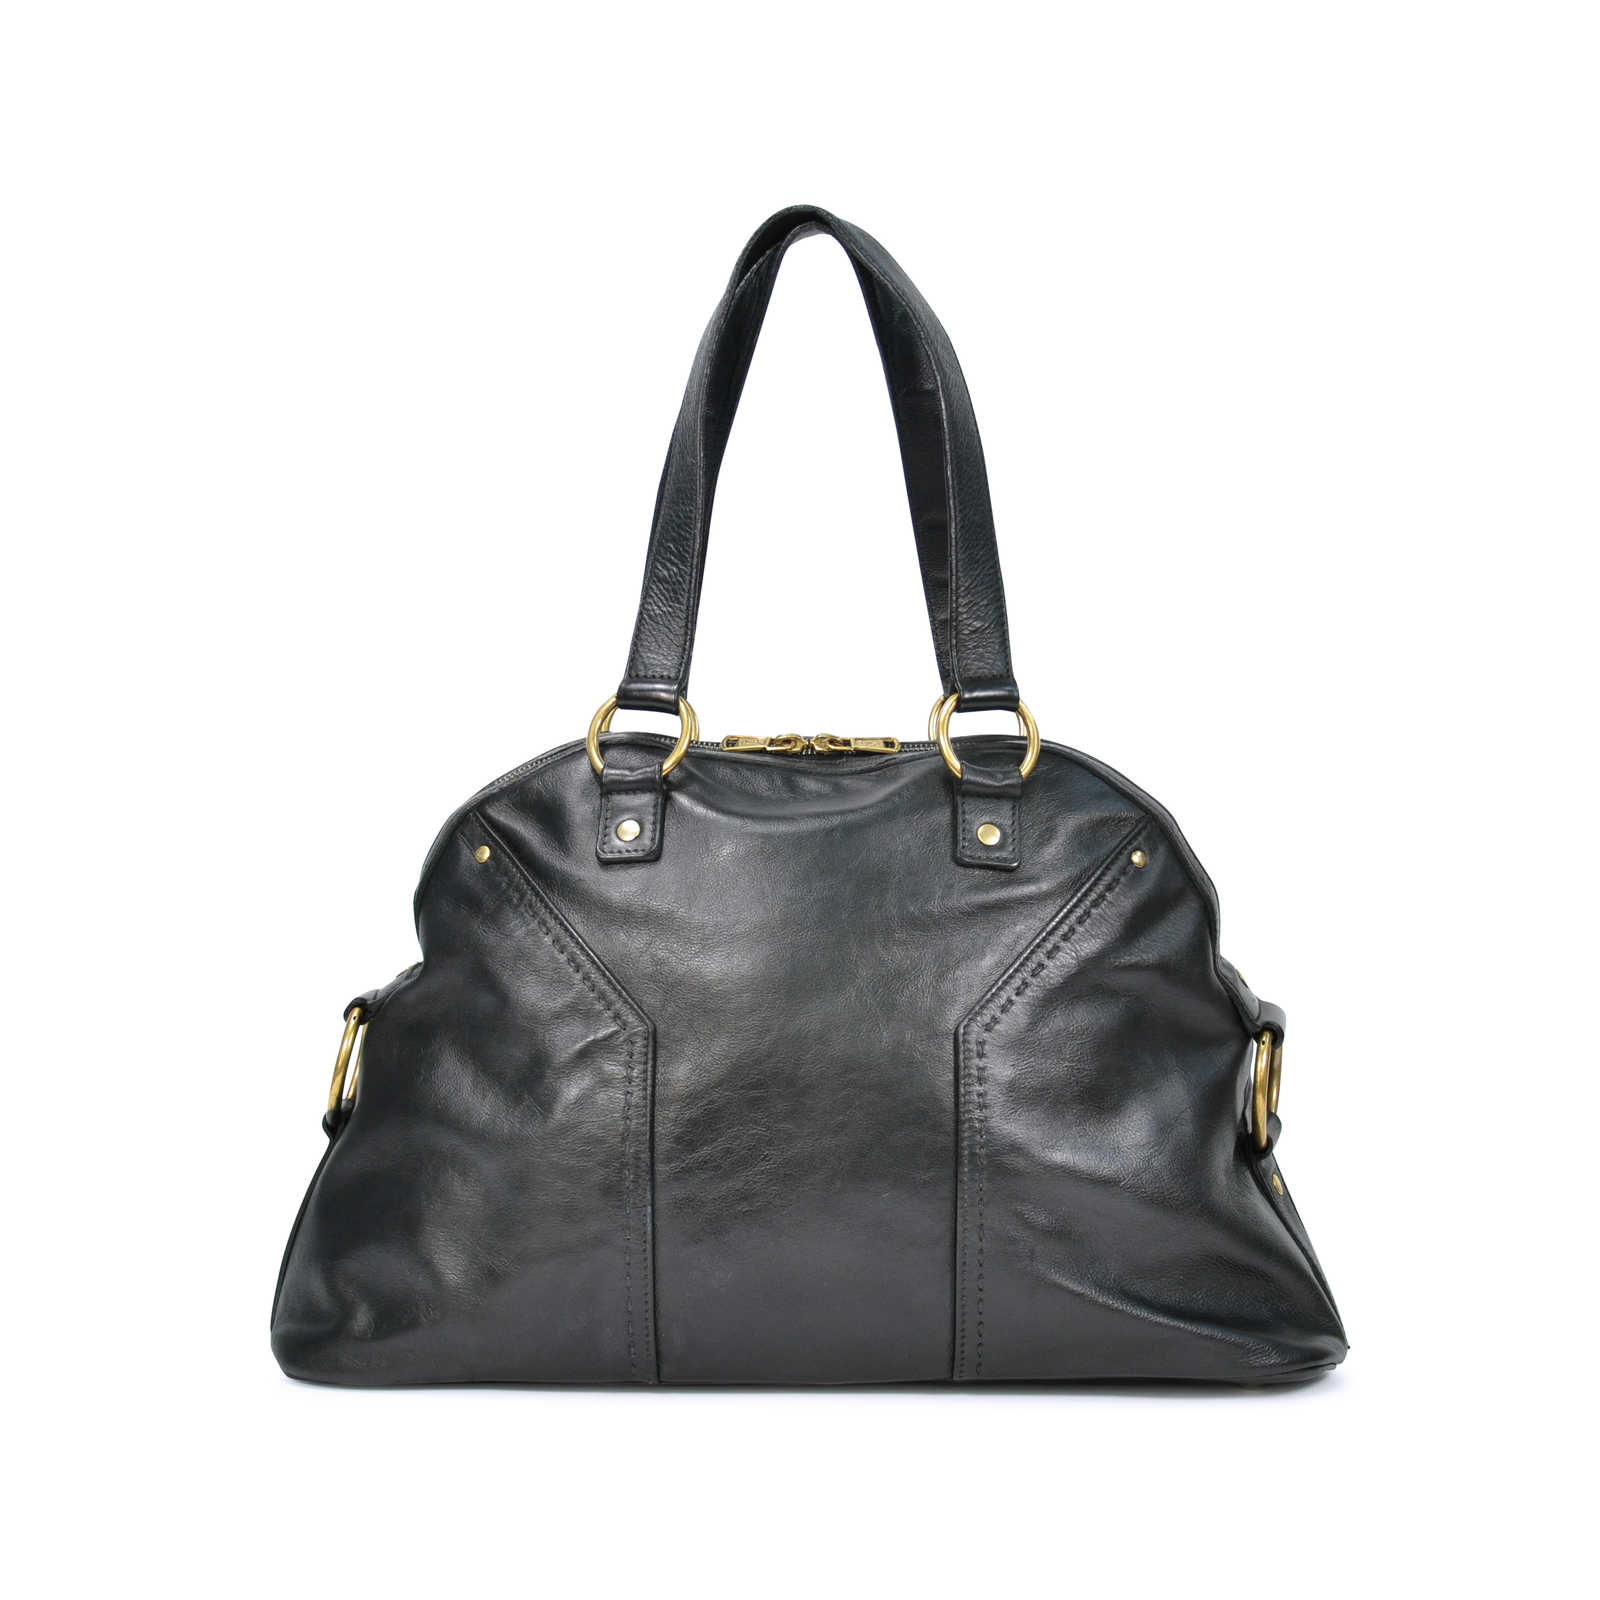 b39554e97b5 ... Authentic Second Hand Yves Saint Laurent Muse Large Bag (PSS-132-00049)  ...